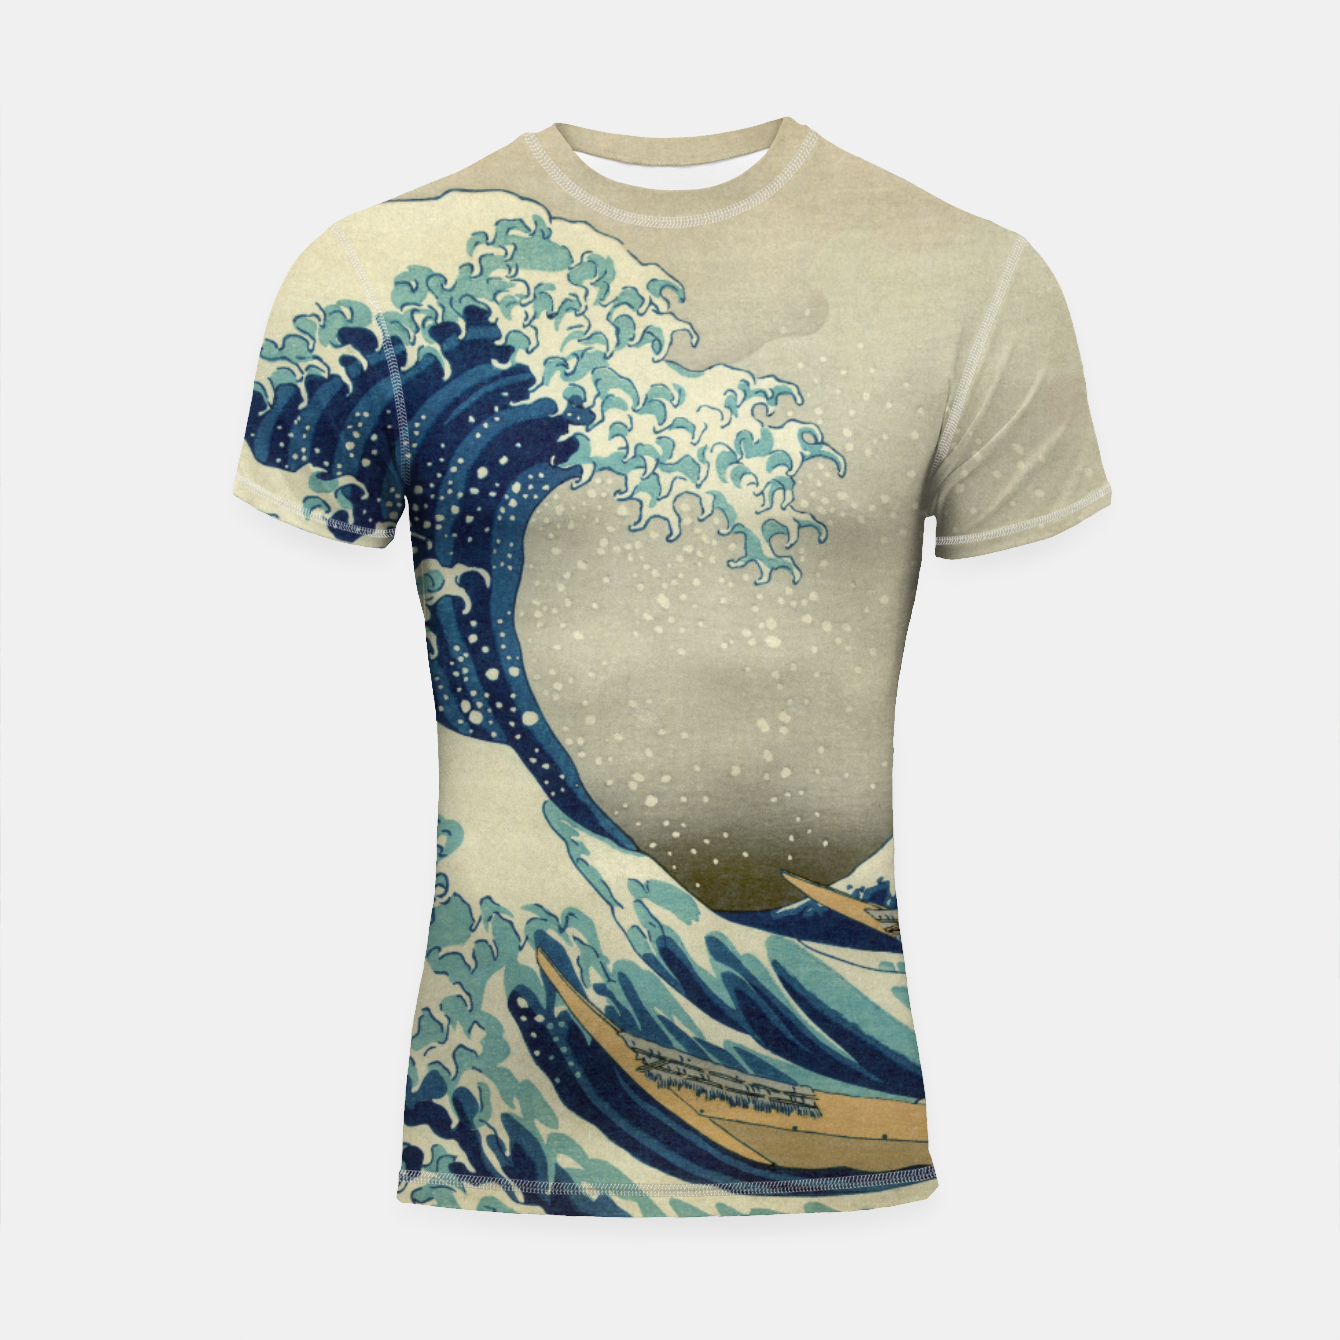 7c78543424e5d The Classic Japanese Great Wave off Kanagawa by Hokusai Shortsleeve  rashguard, Live Heroes